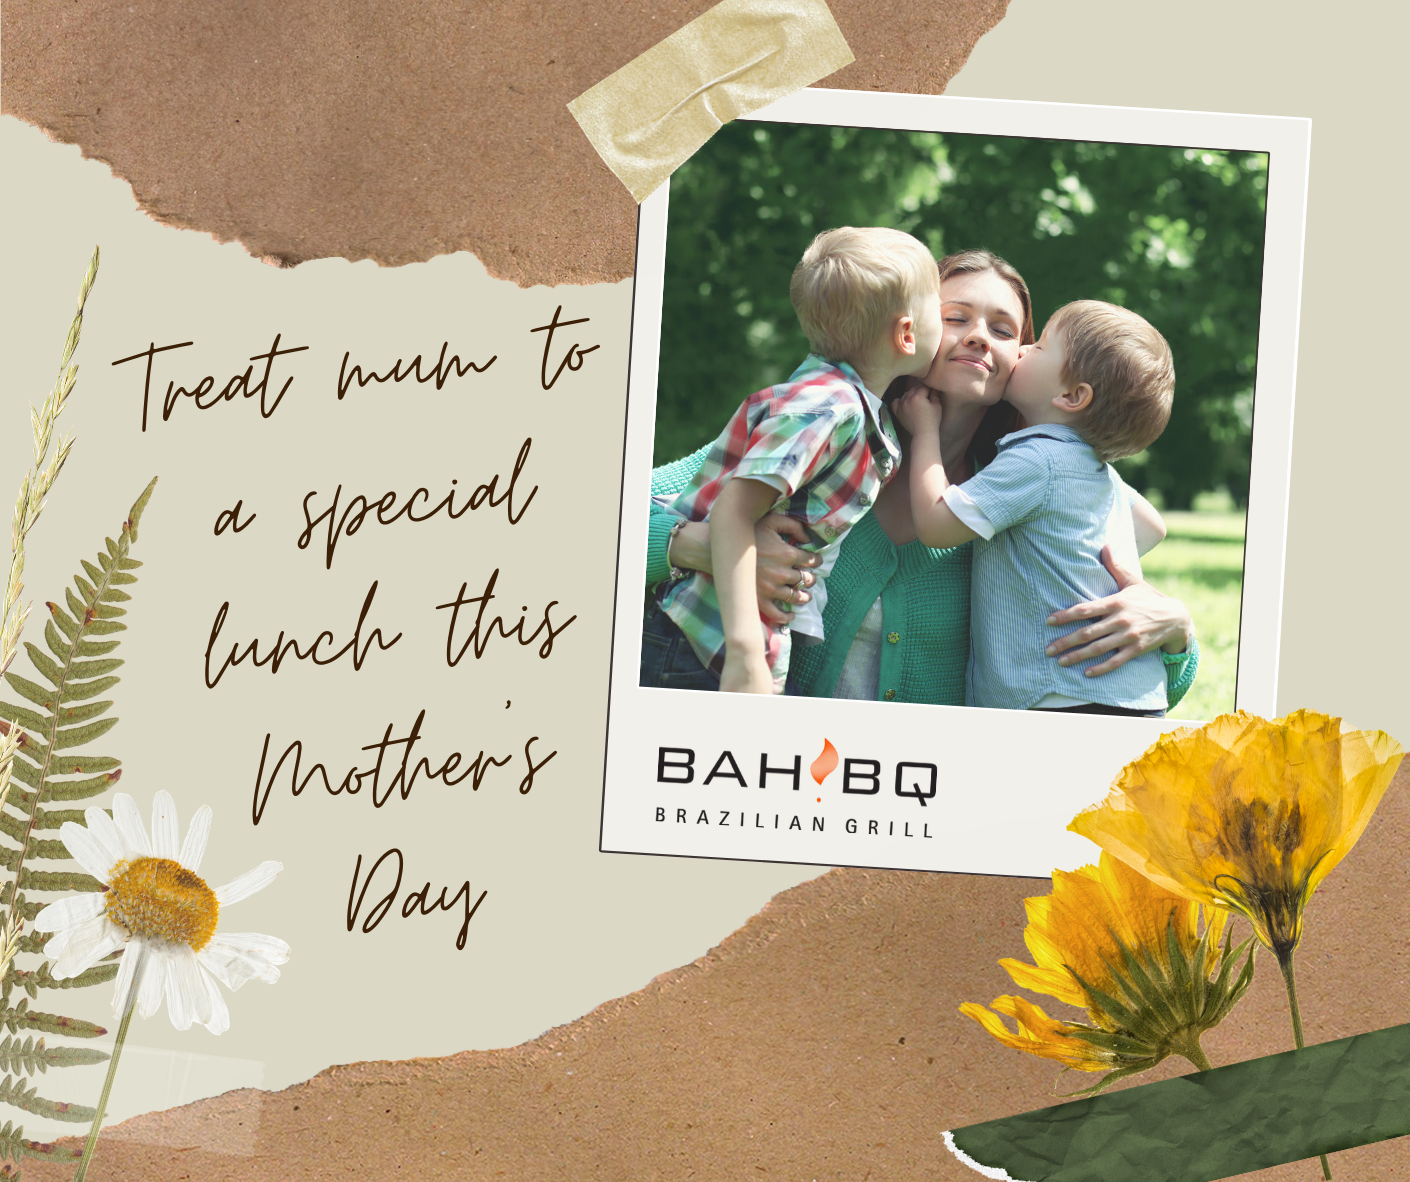 Treat Mum to a Special BahBQ feast this Mother's Day